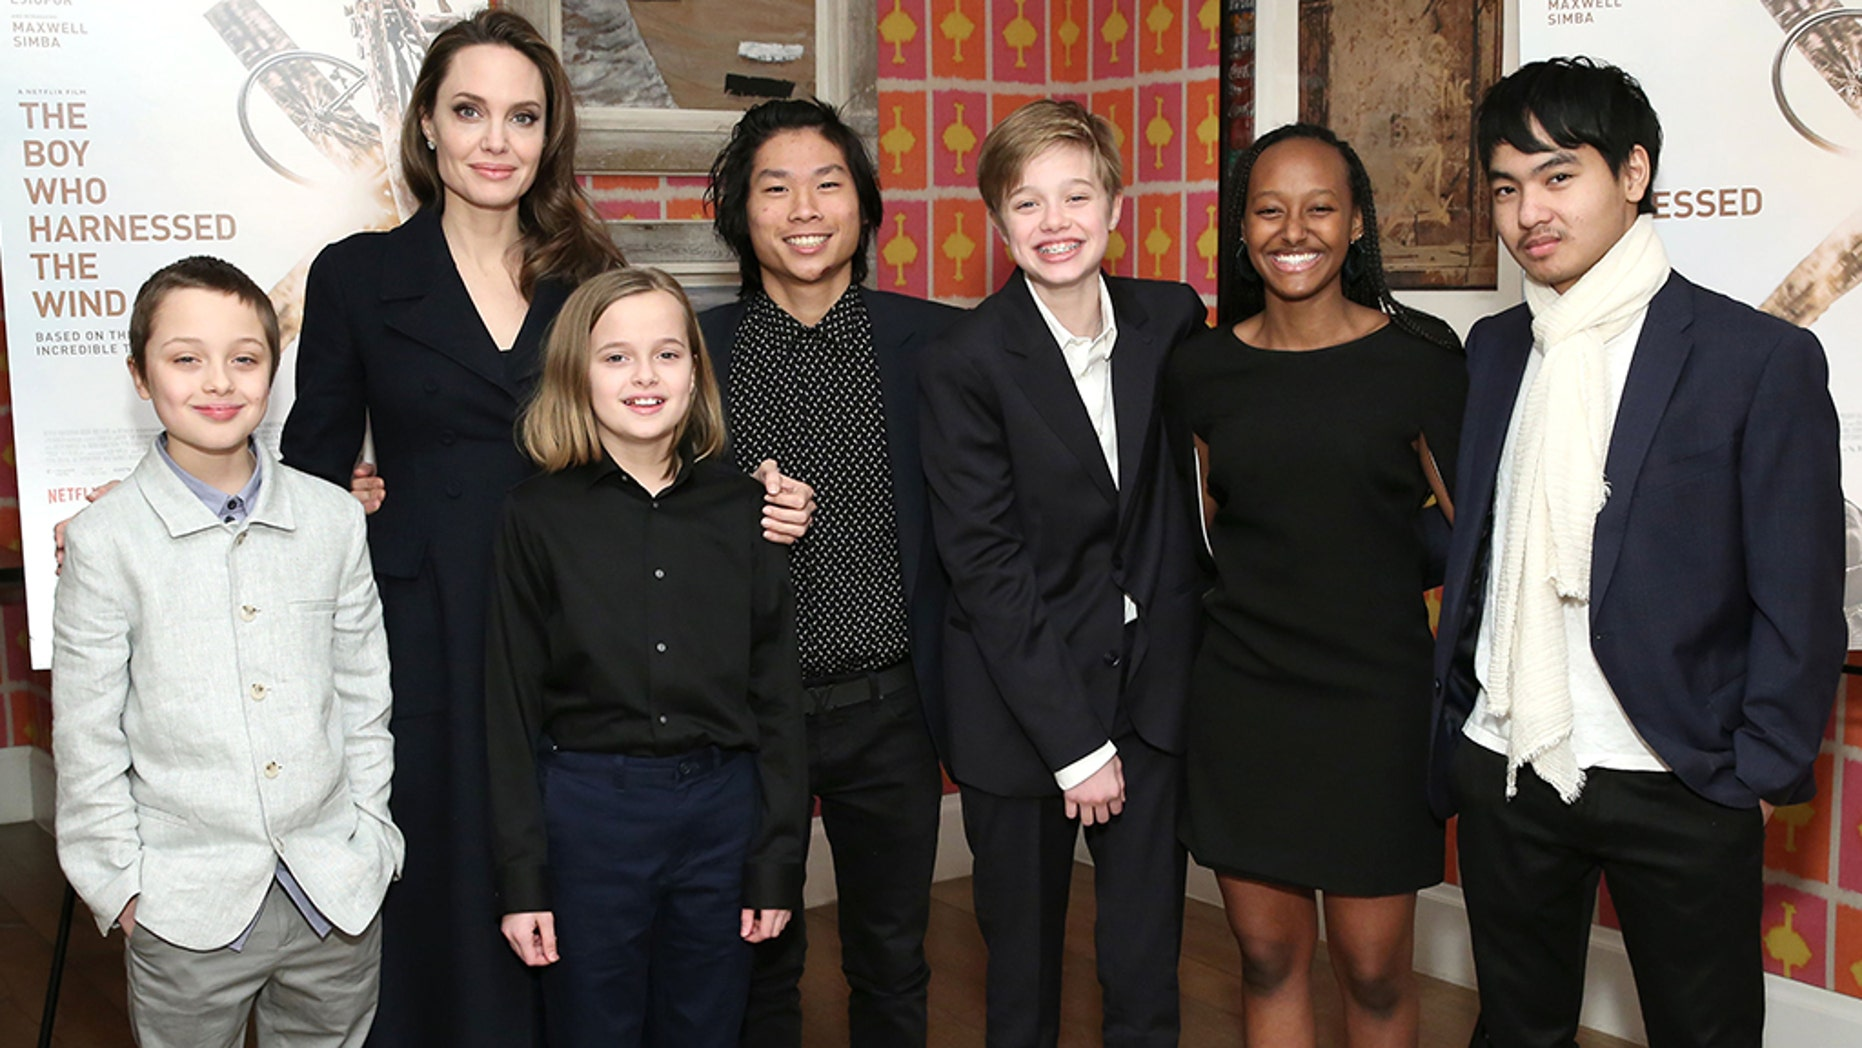 "Angelina Jolie with children Knox Leon Jolie-Pitt, Vivienne Marcheline Jolie-Pitt, Pax Thien Jolie-Pitt, Shiloh Nouvel Jolie-Pitt, Zahara Marley Jolie-Pitt and Maddox Chivan Jolie-Pitt attend ""The Boy Who Harnessed The Wind"" Special Screening at Crosby Street Hotel on February 25, 2019 in New York City."